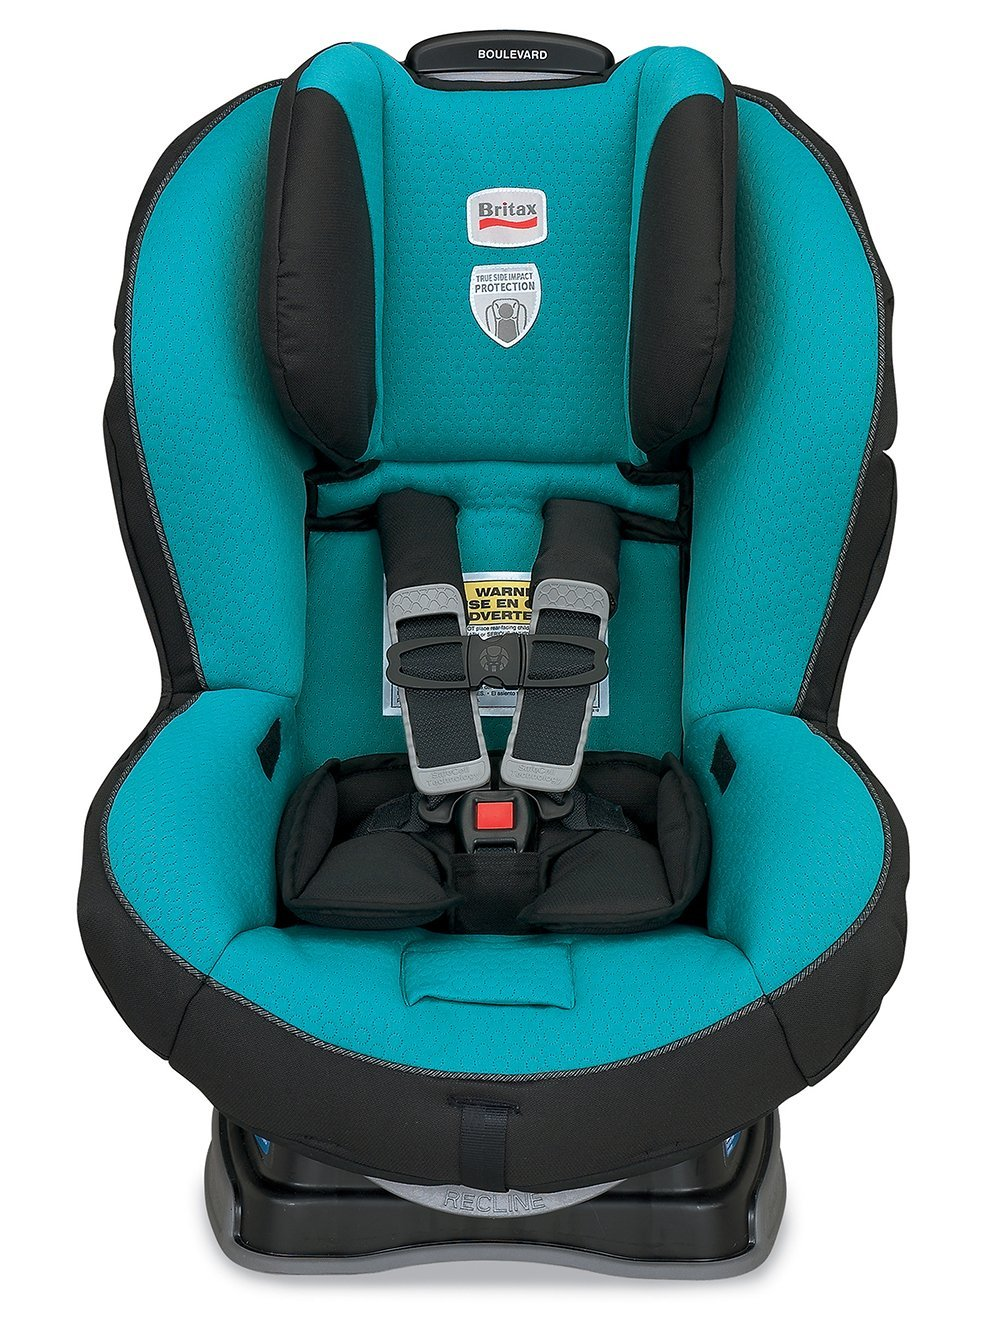 My Baby S Been Due For A Car Seat Upgrade Since He Outgrew His Infant I Ve Agonizing As To What Whole Month Now No